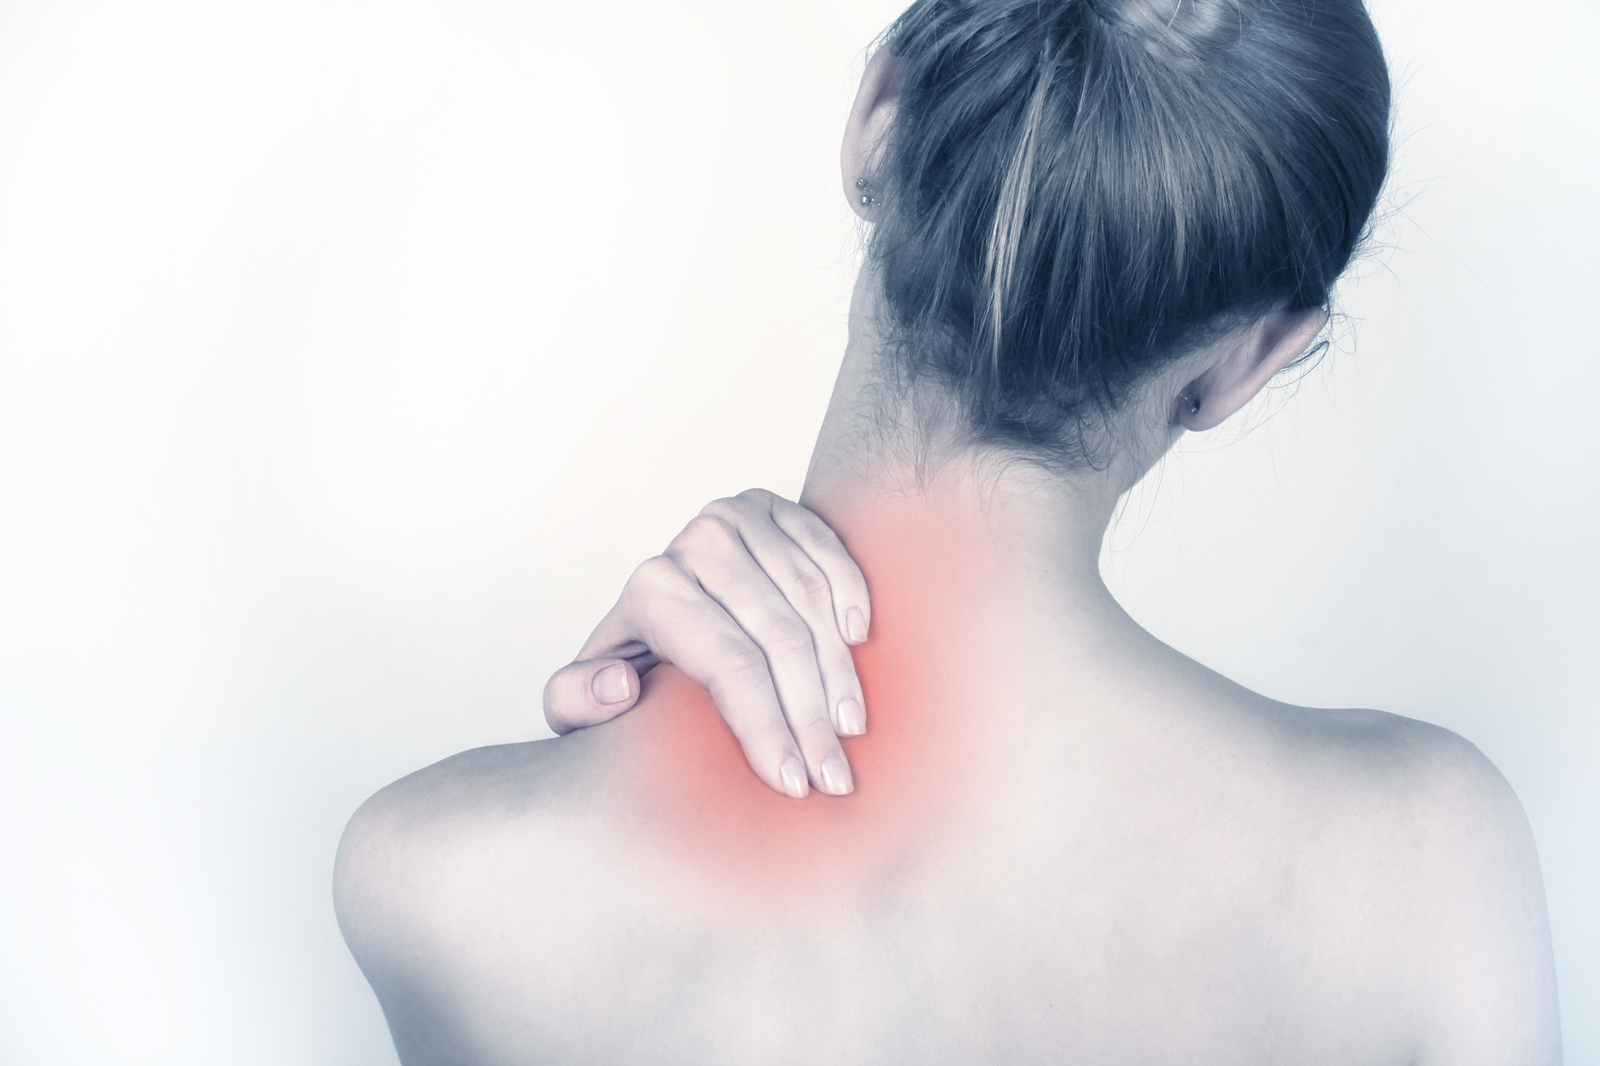 sudden acute neck pain, or chronic neck problems